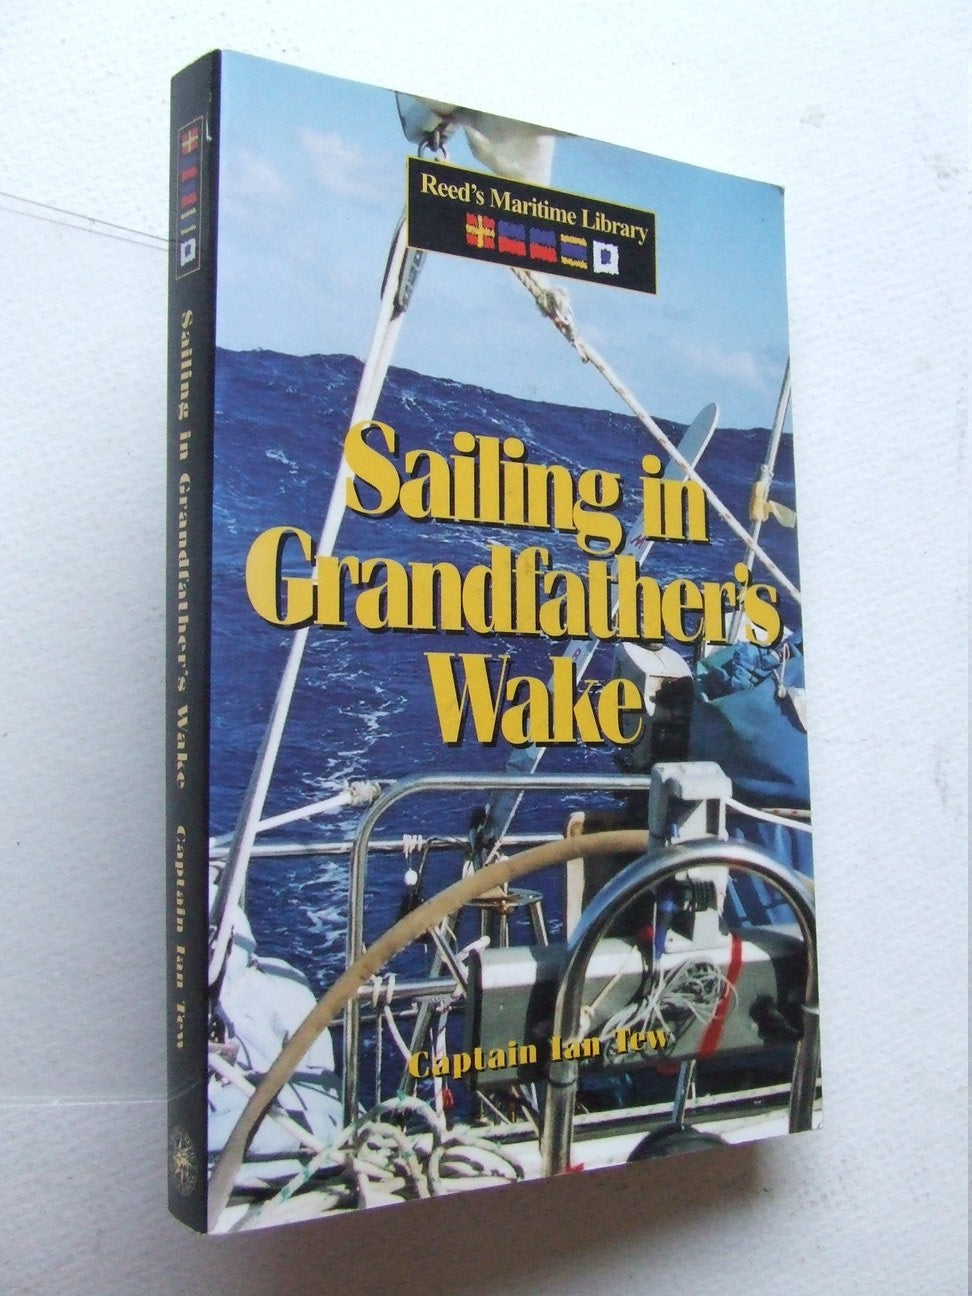 Sailing in Grandfather's Wake